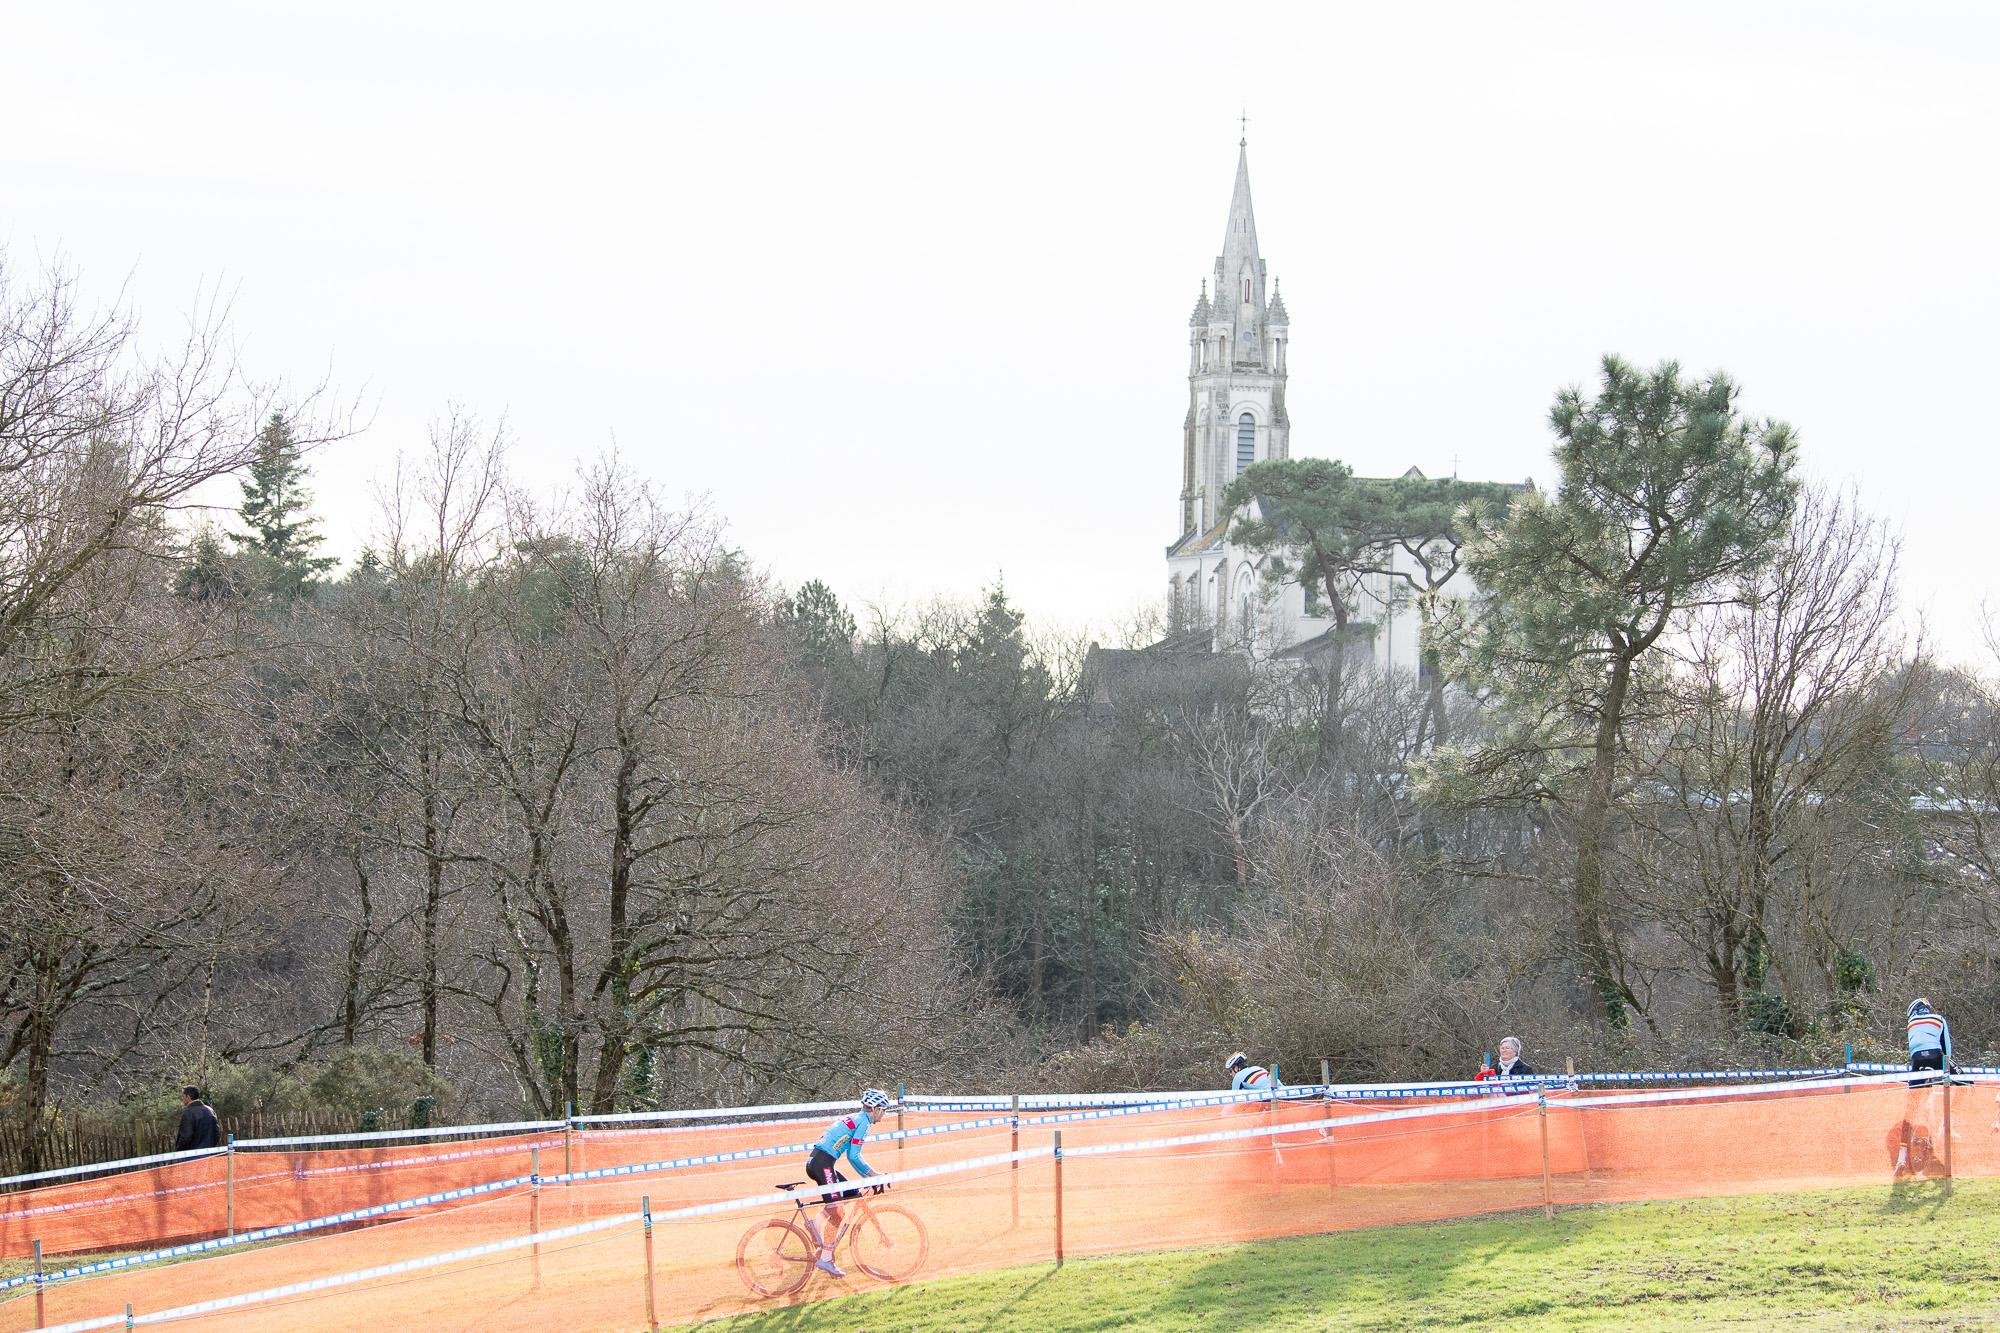 The Pontchateau church tower overlooking the circuit.